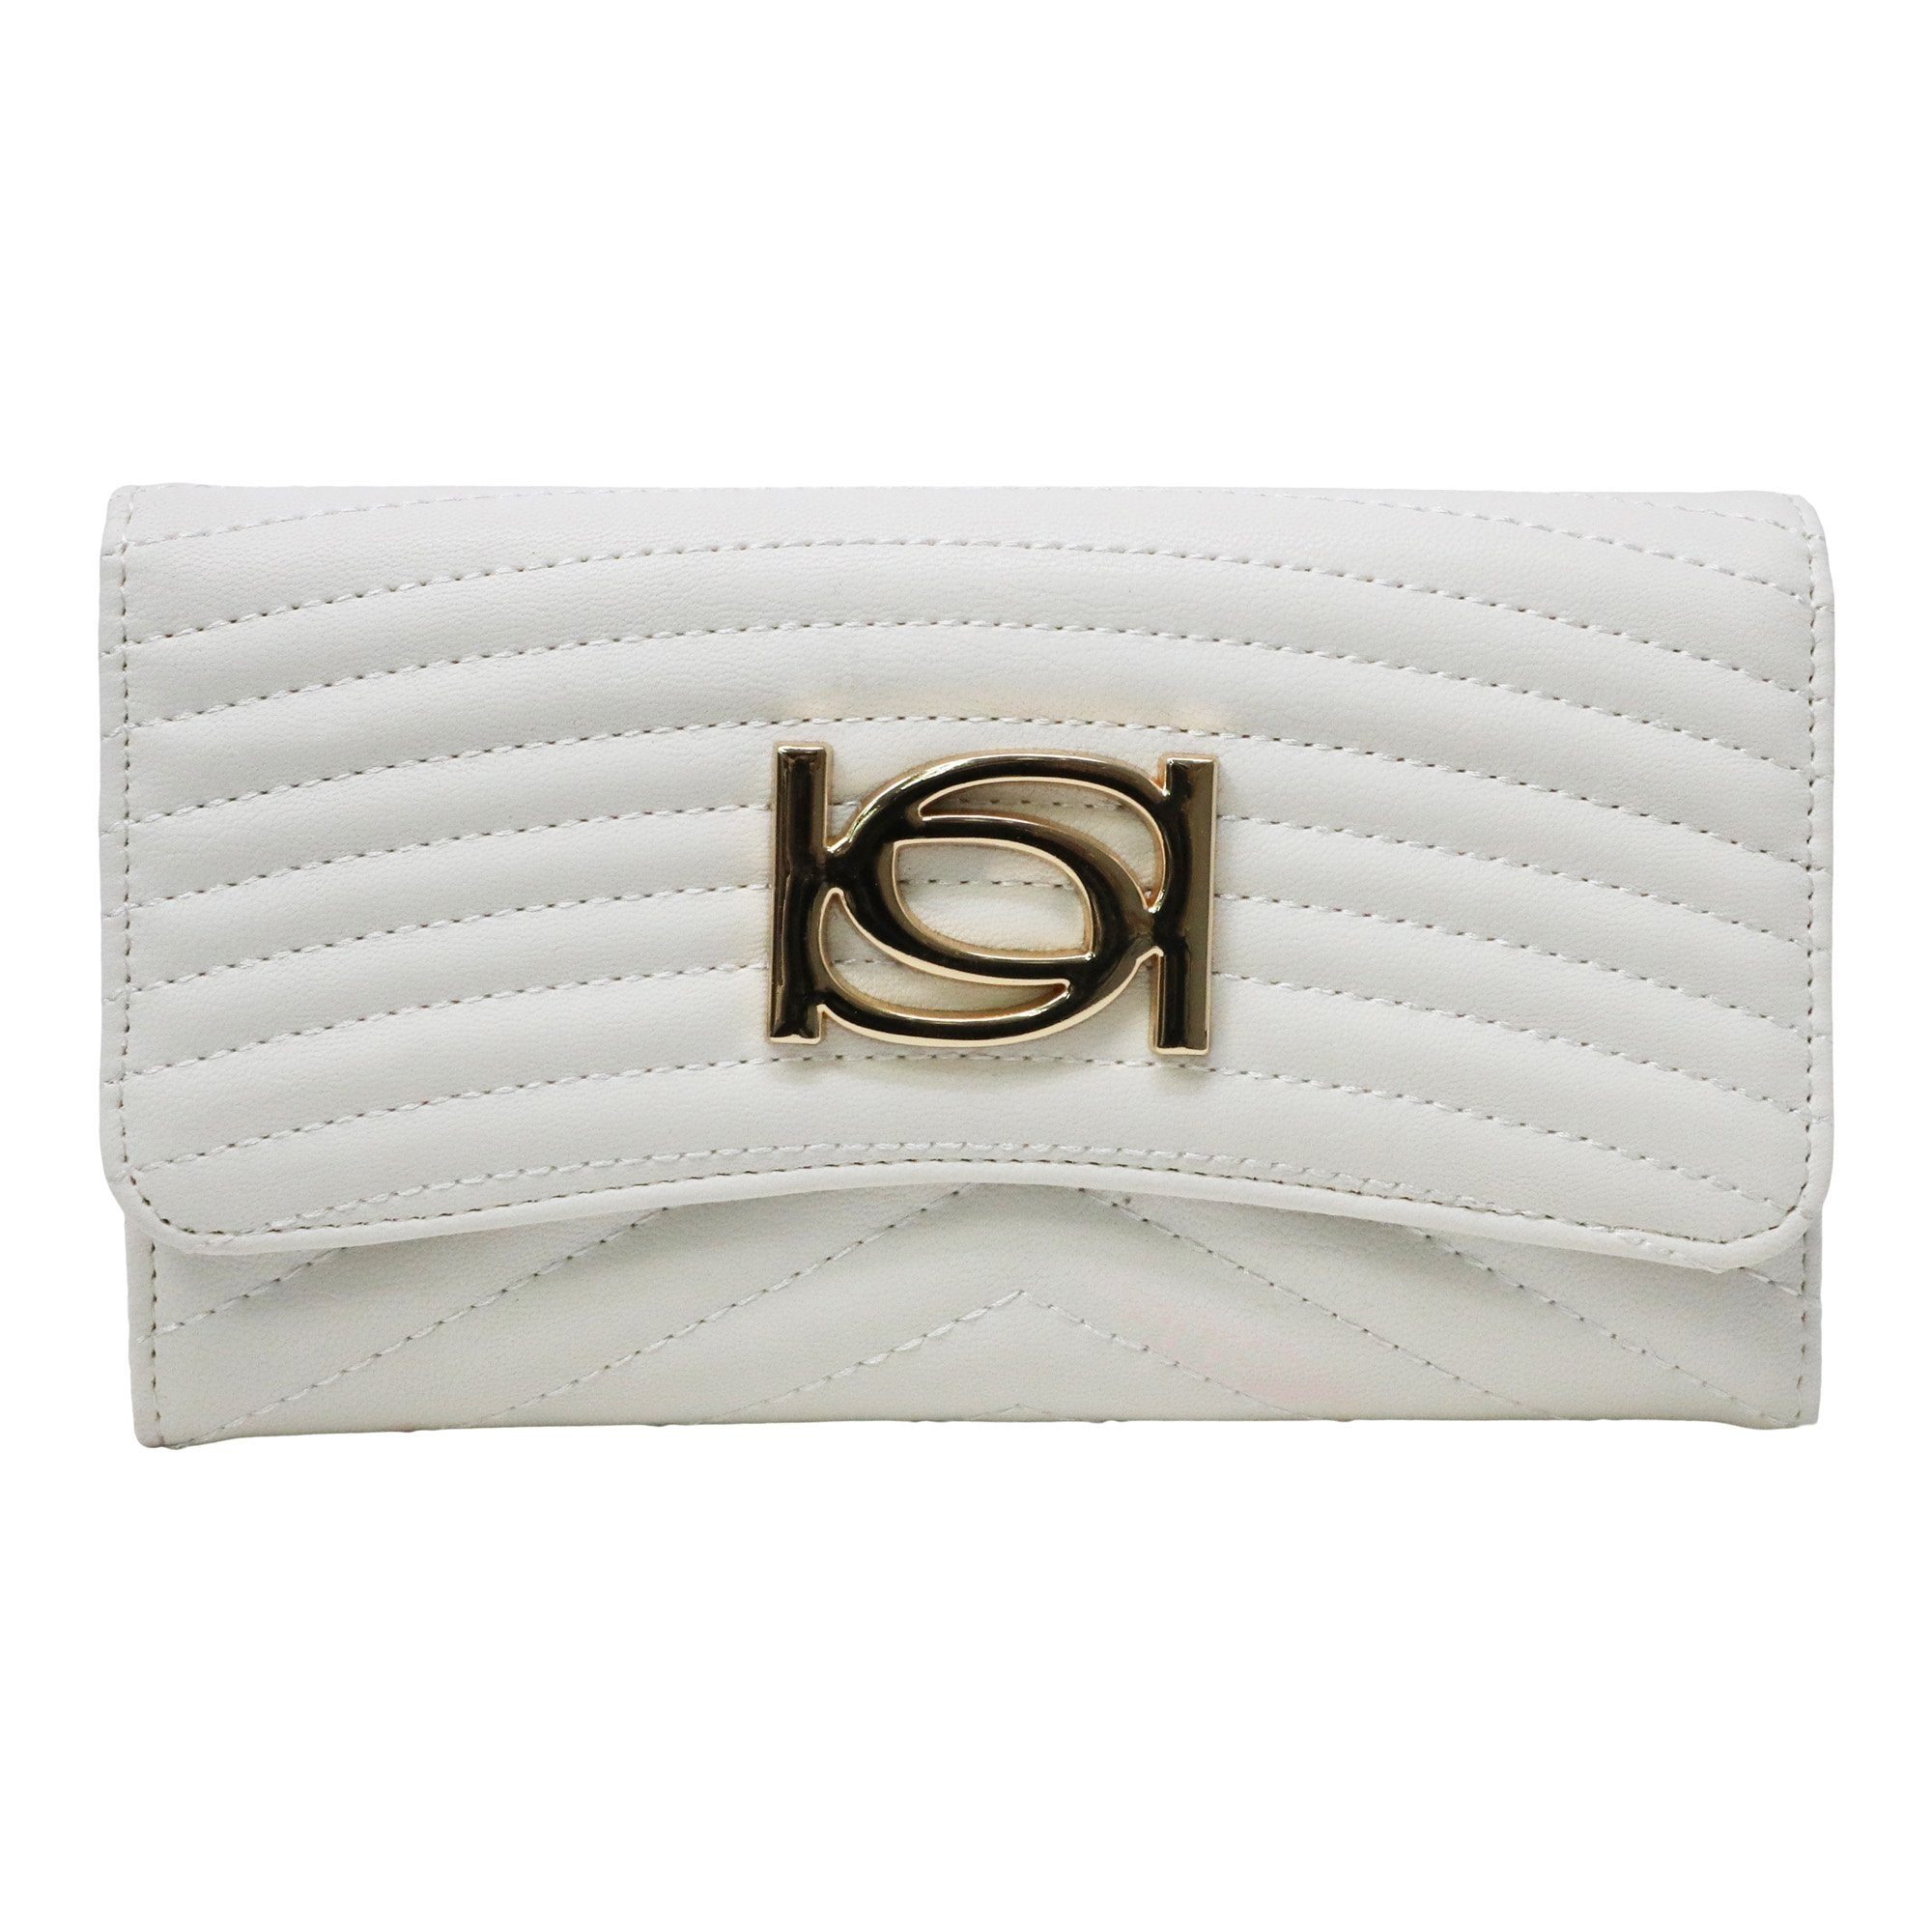 Bebe Women's Daisy Flap Wallet in White Polyester